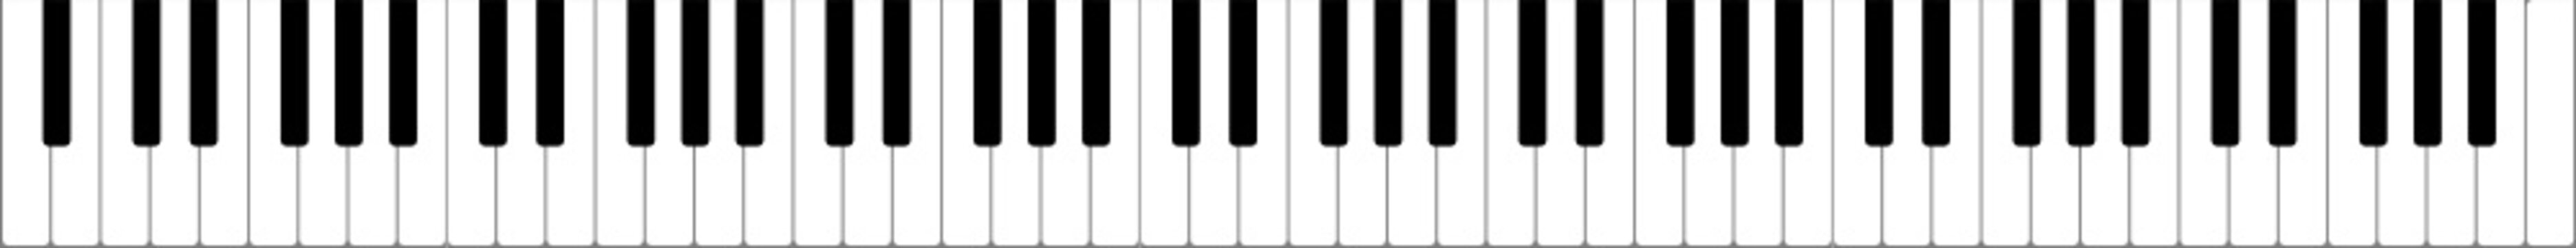 High quality realistic and proportionate vector illustration of full lenght 88 keys (88 notes, 7 octaves) piano keyboard. Editable vector eps file for music school related projects